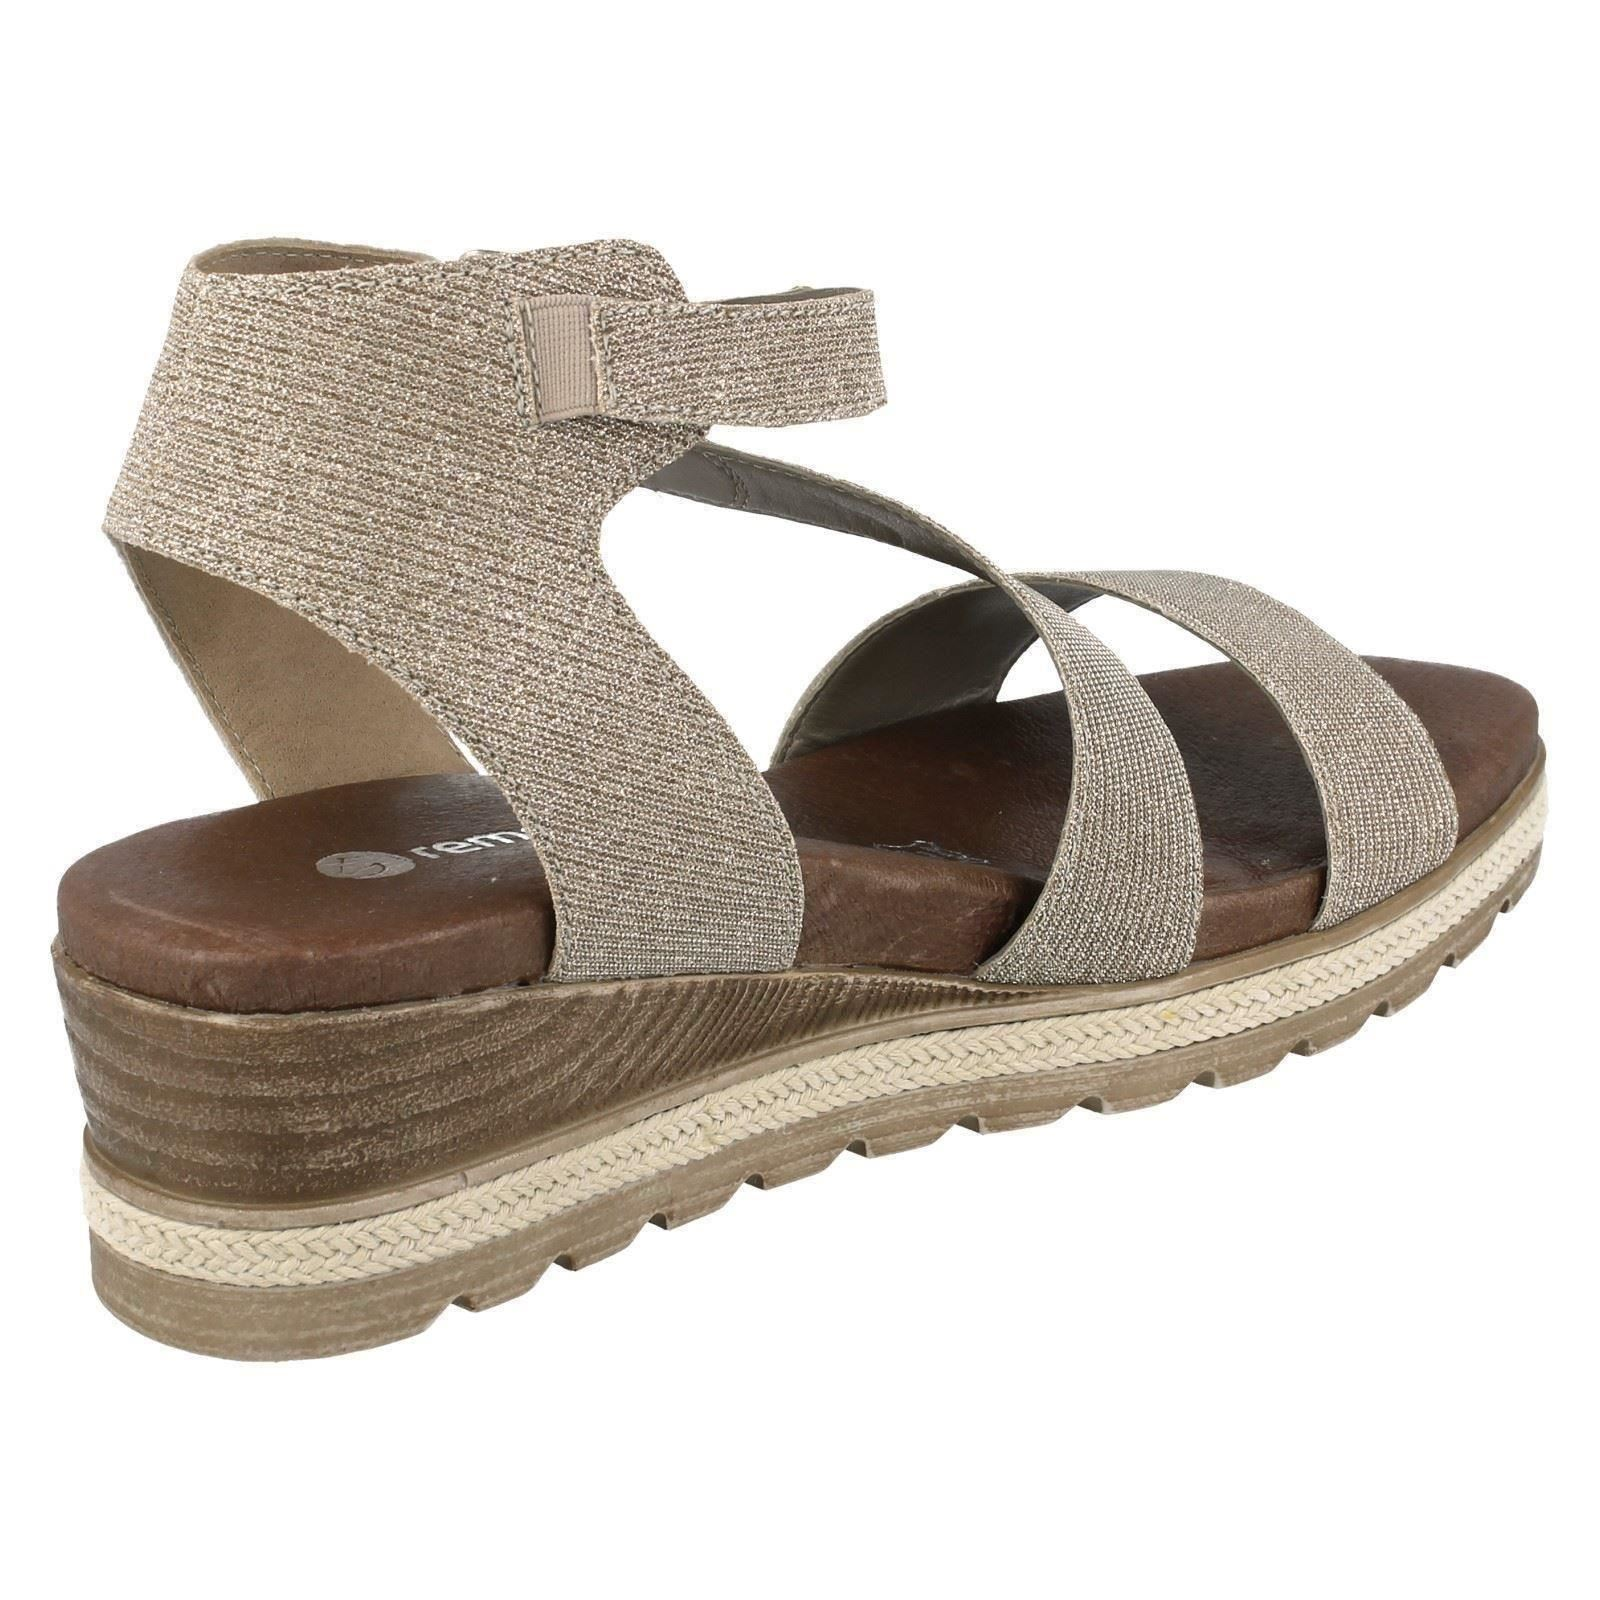 Remonte Remonte Remonte Ladies Sandals - D6351 740fb0